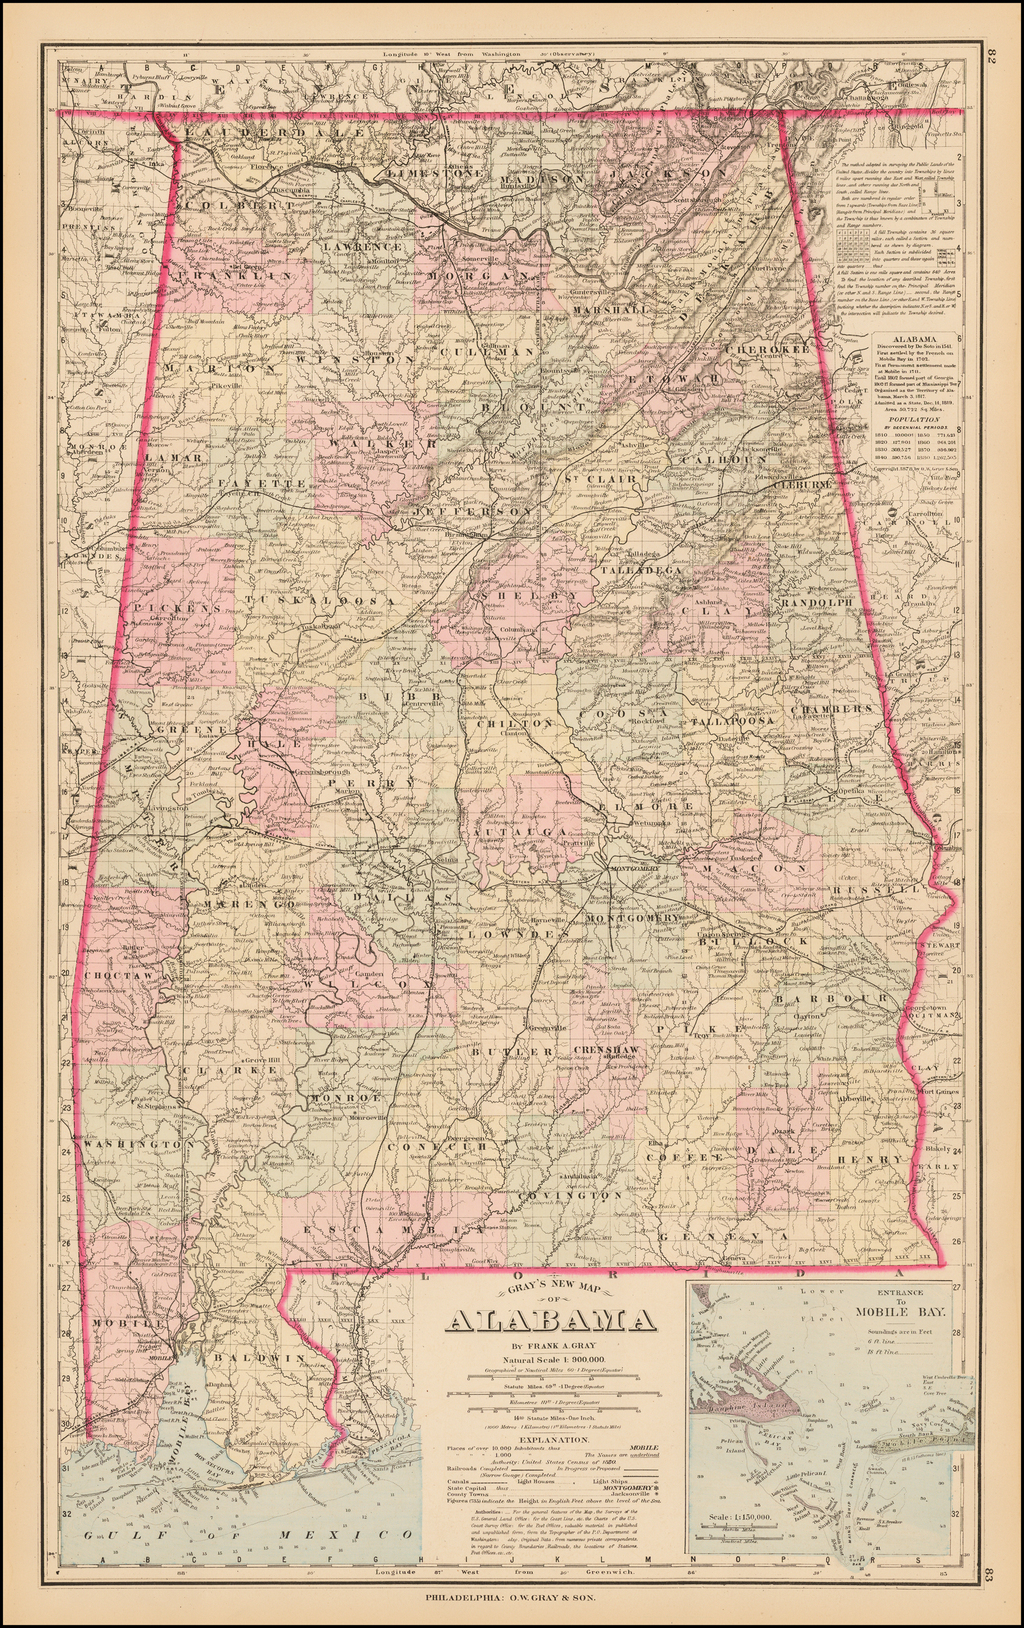 Gray's New Map of Alabama By O.W. Gray